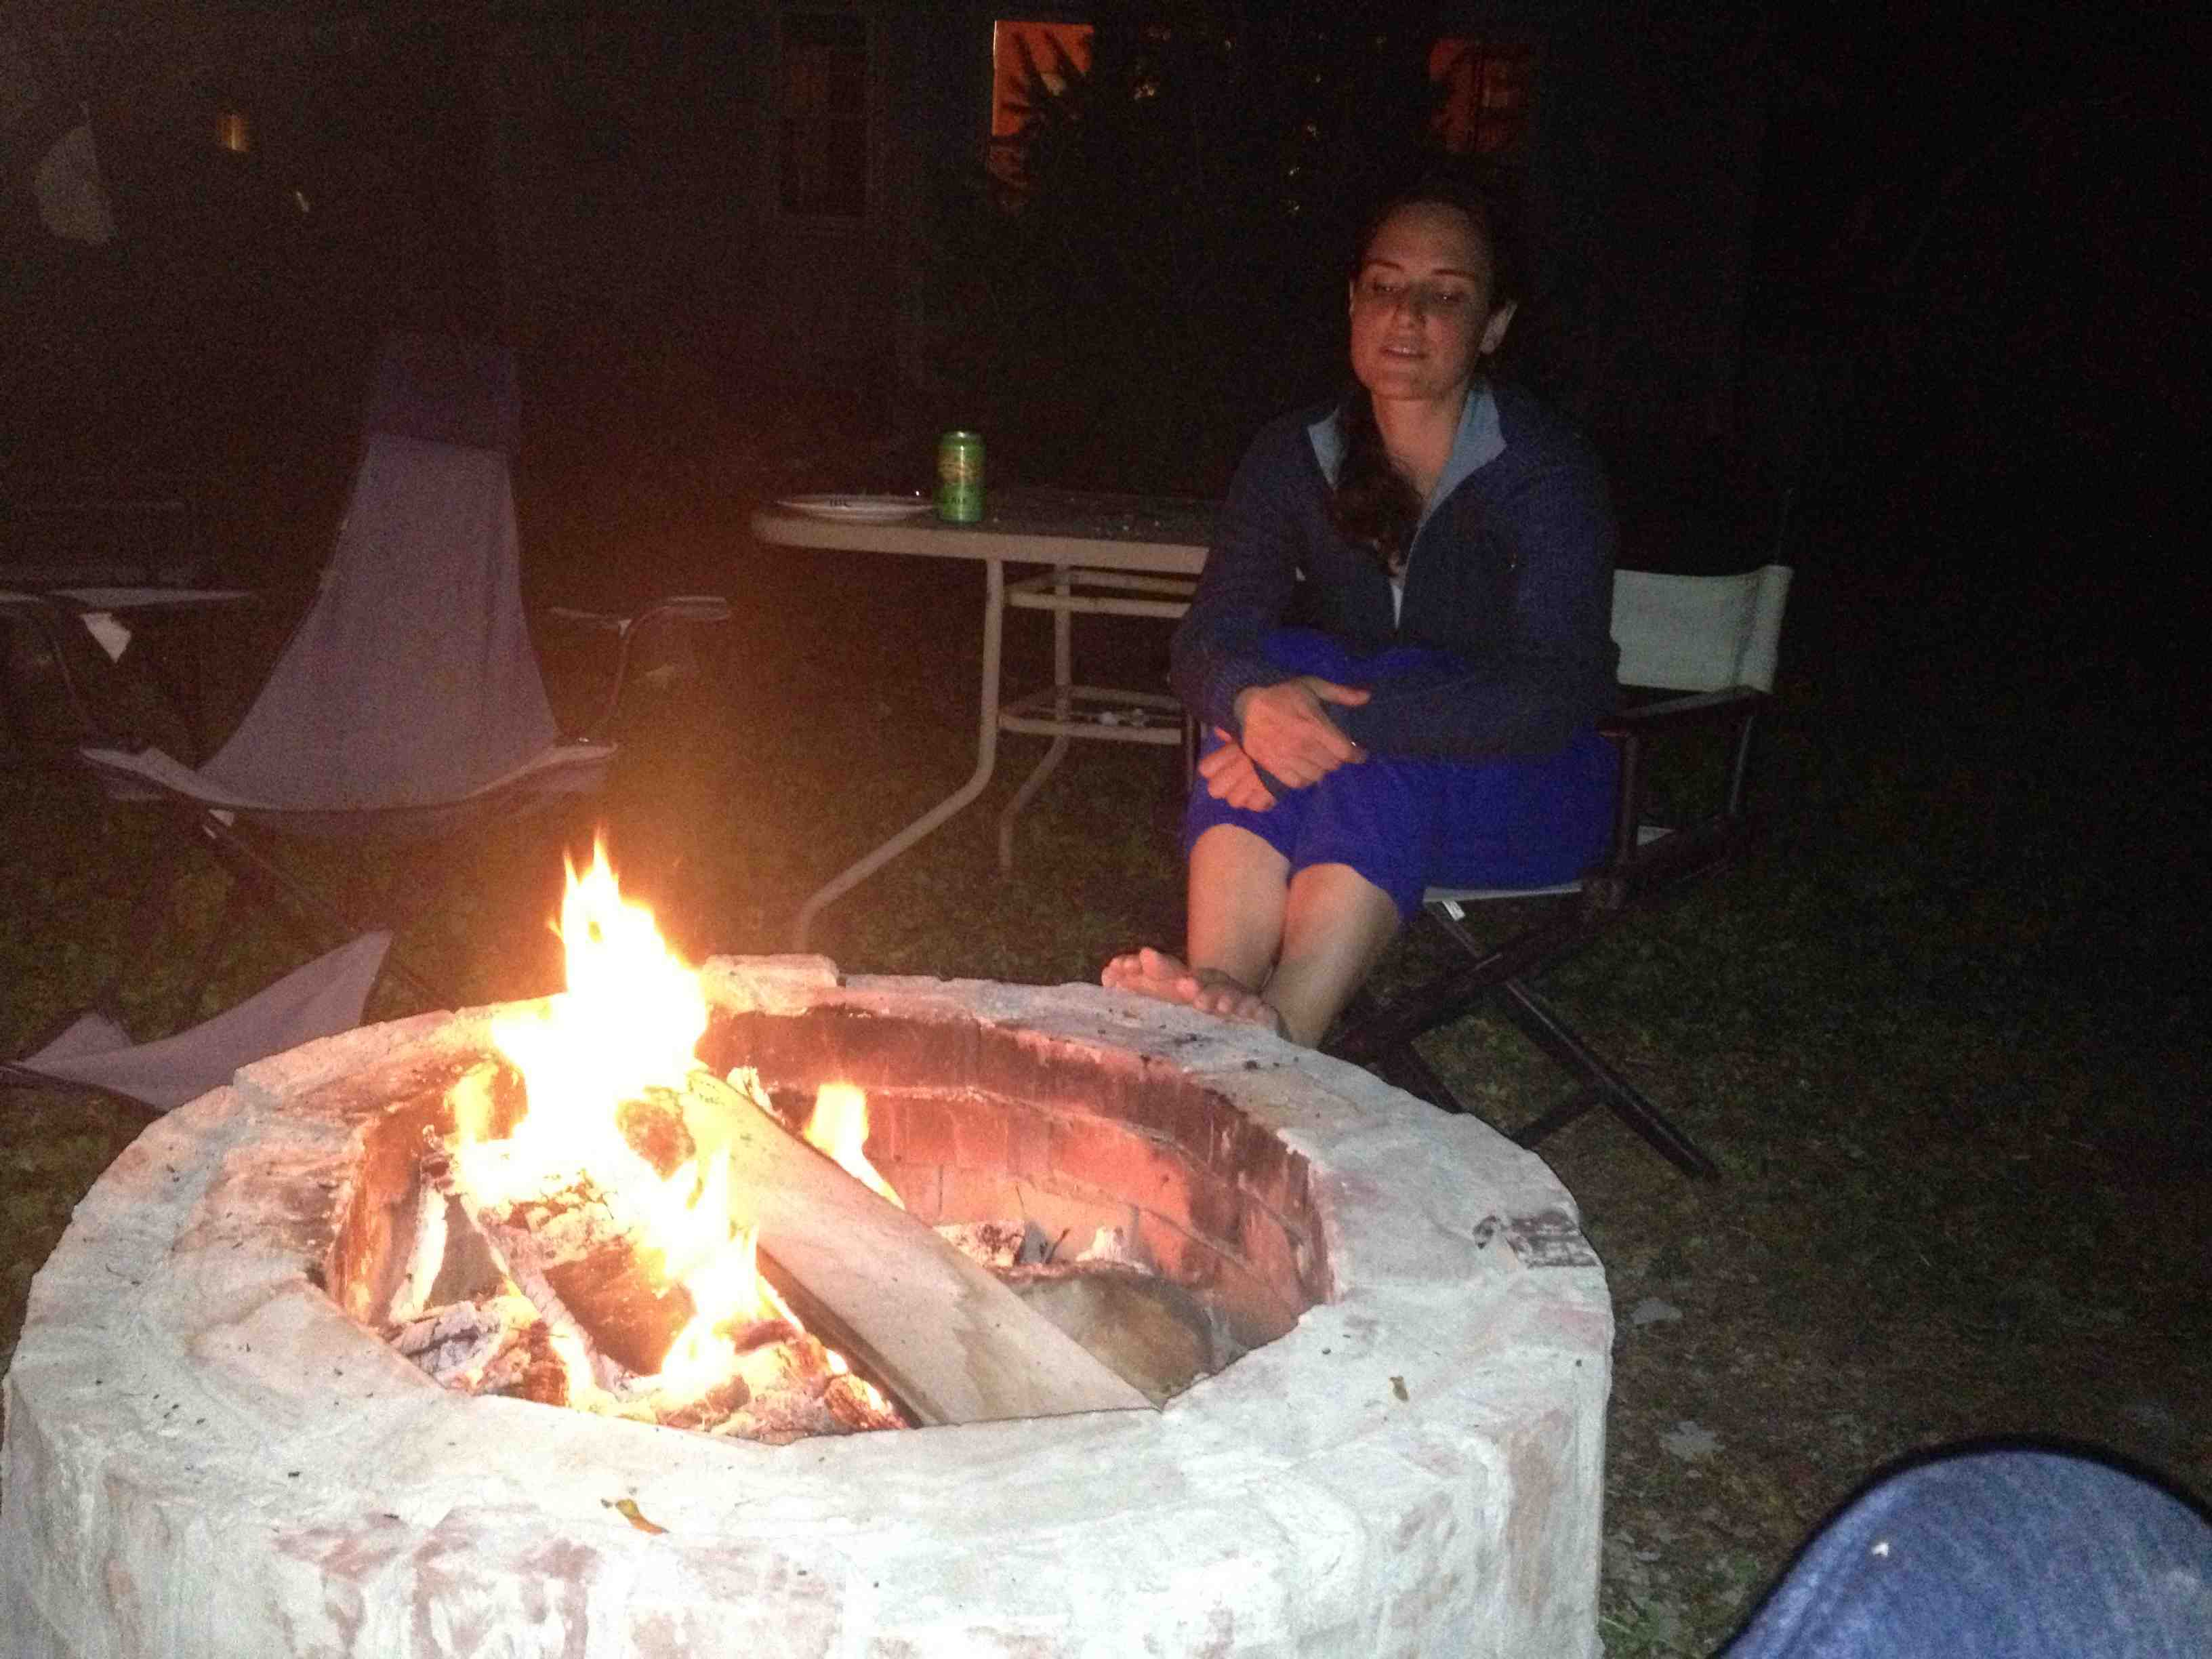 Kate tests the fire pit